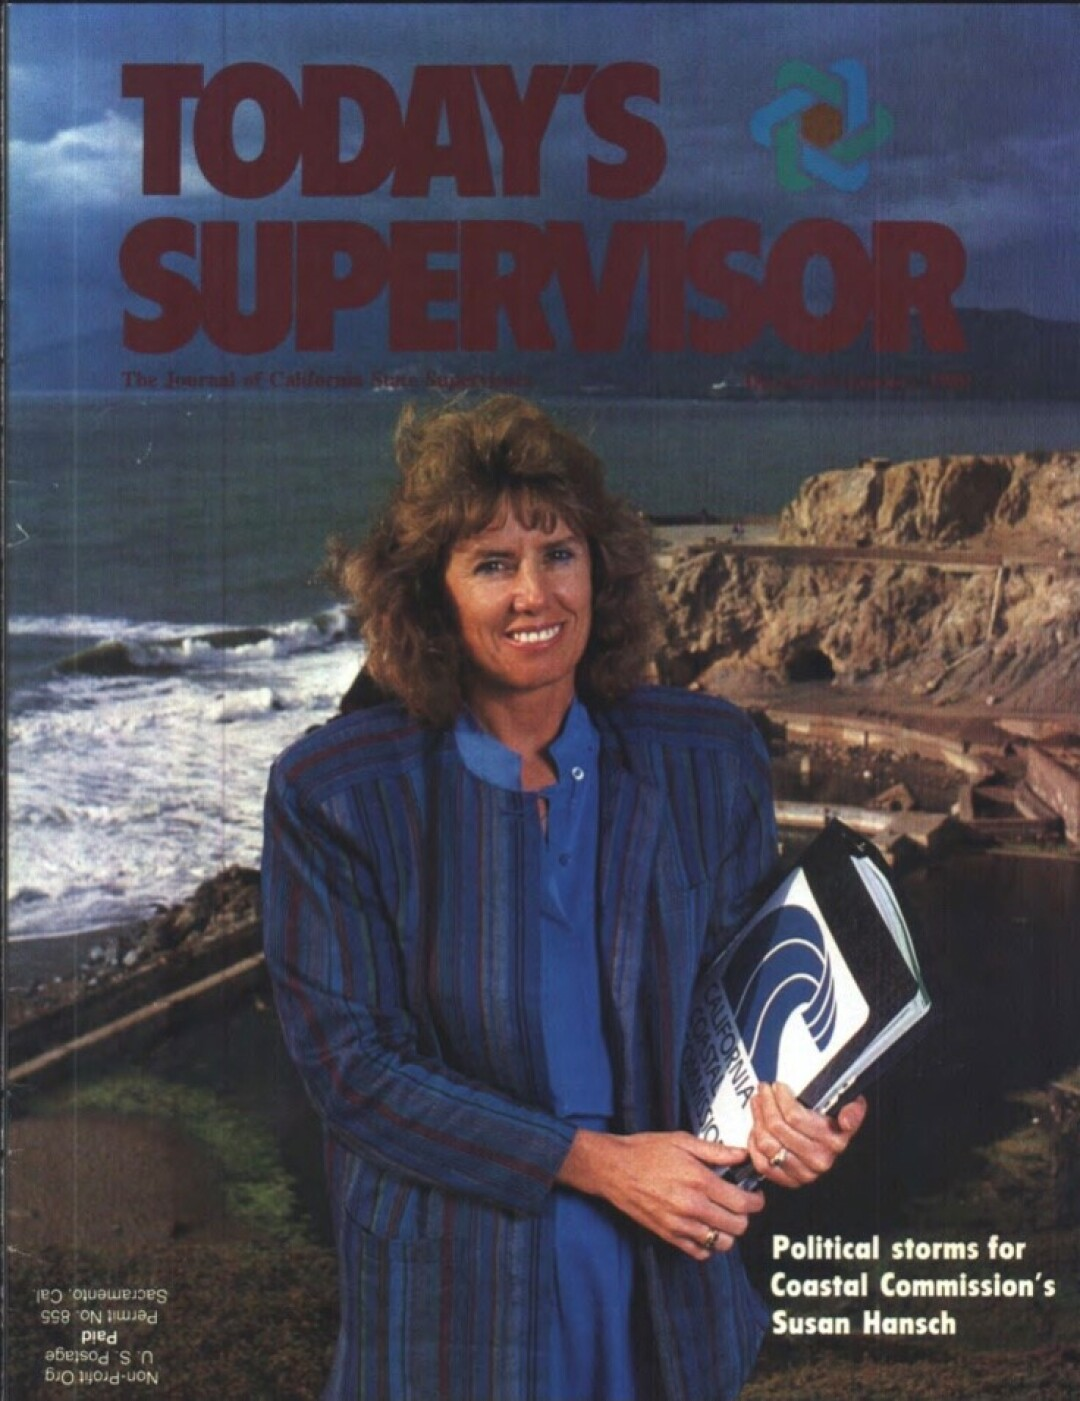 Susan Hansch was featured in an 1988 issue of a journal published by the Assn. of California State Supervisors.